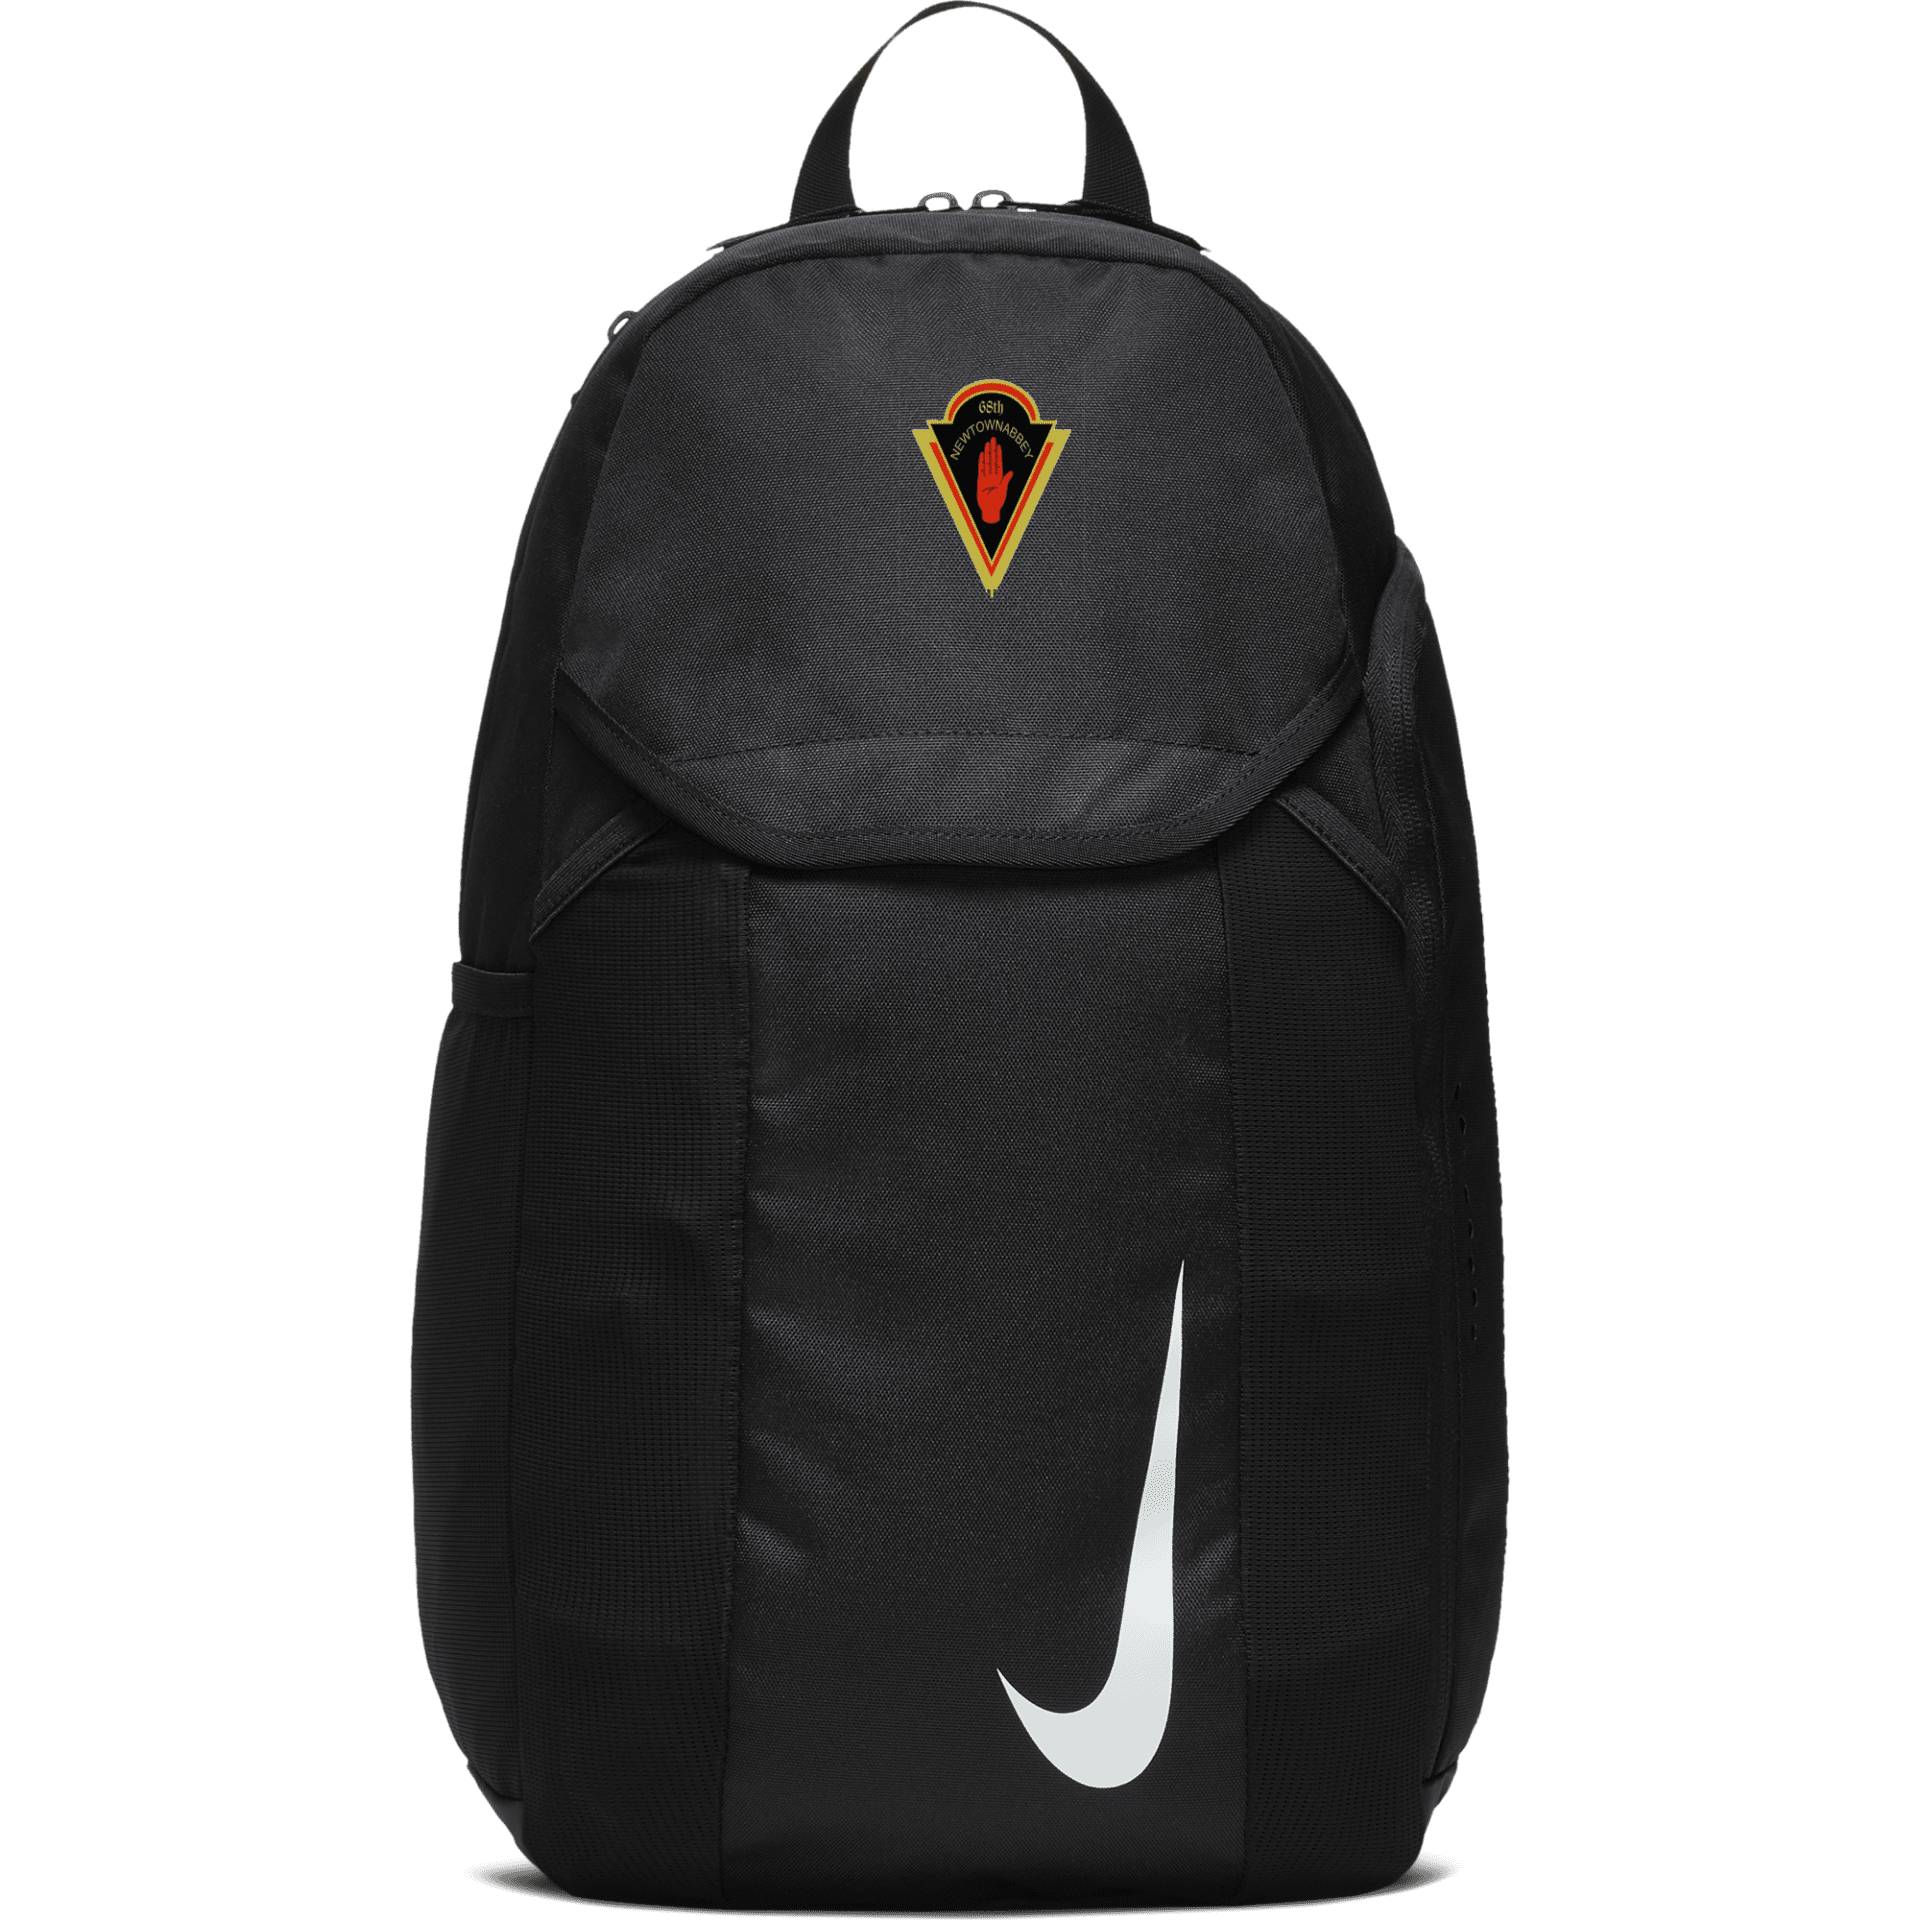 68th newtownabbey back pack 33973 p